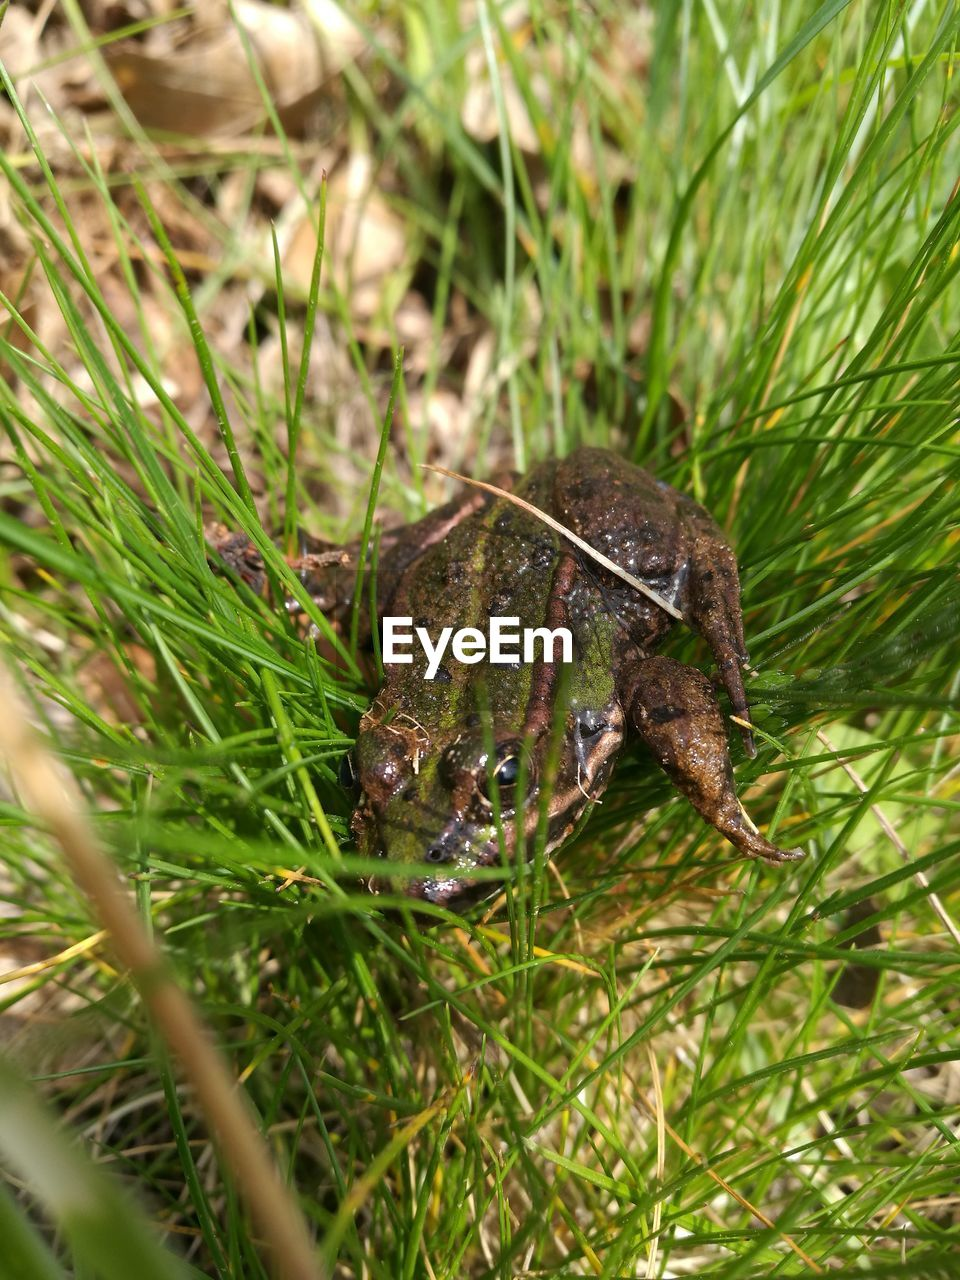 animal, animal themes, one animal, animal wildlife, plant, animals in the wild, grass, green color, nature, vertebrate, day, no people, selective focus, growth, close-up, amphibian, outdoors, frog, land, high angle view, blade of grass